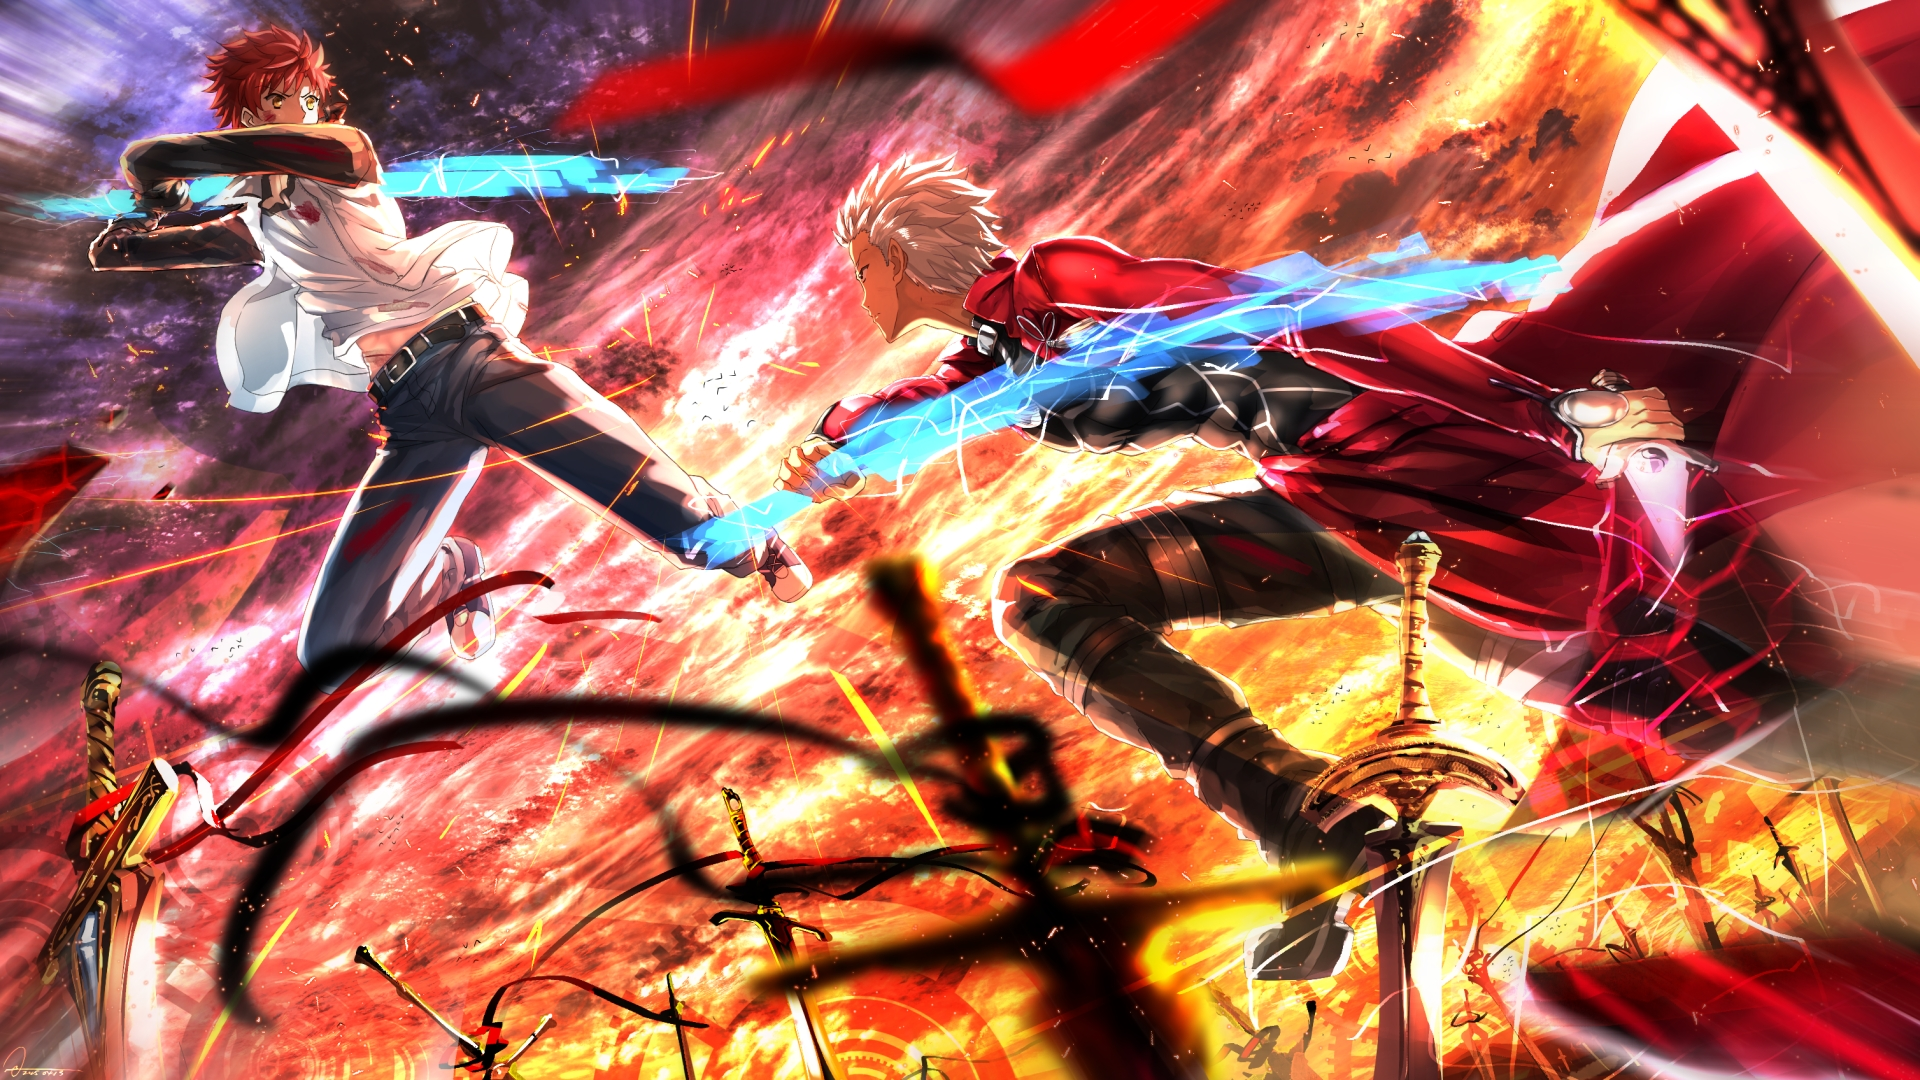 fate/stay night: unlimited blade works full hd wallpaper and